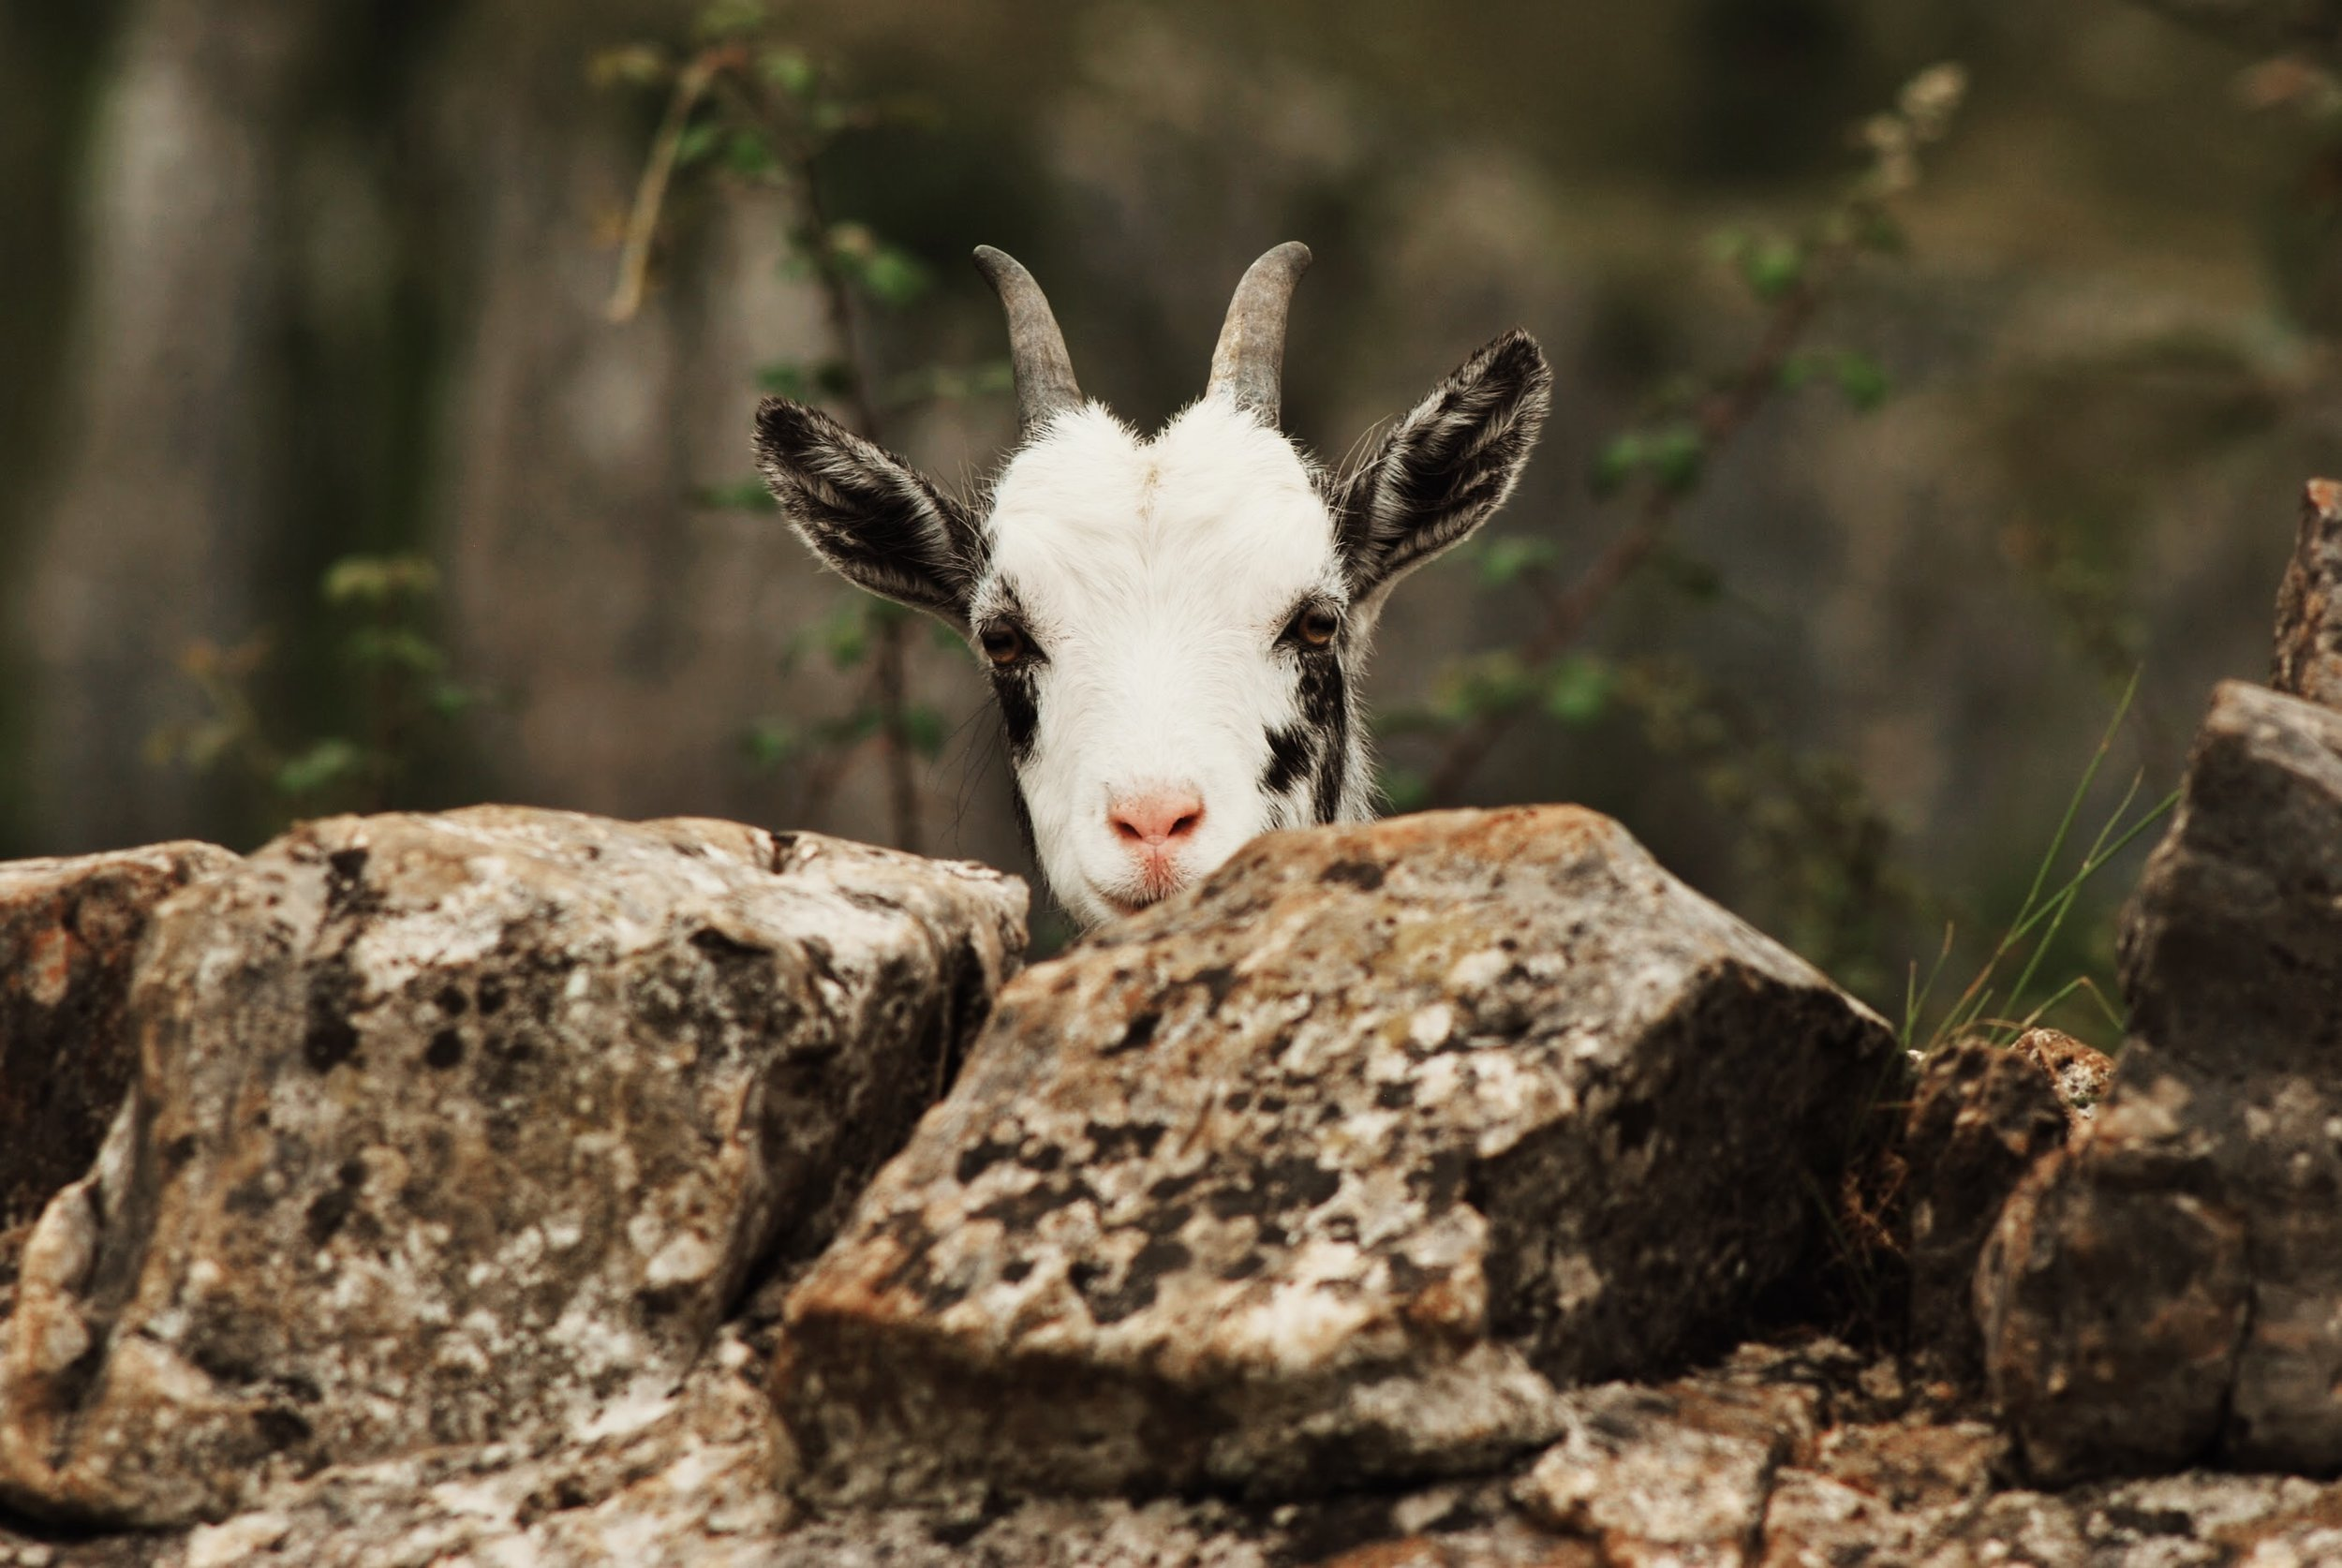 The goats may look friendly but...